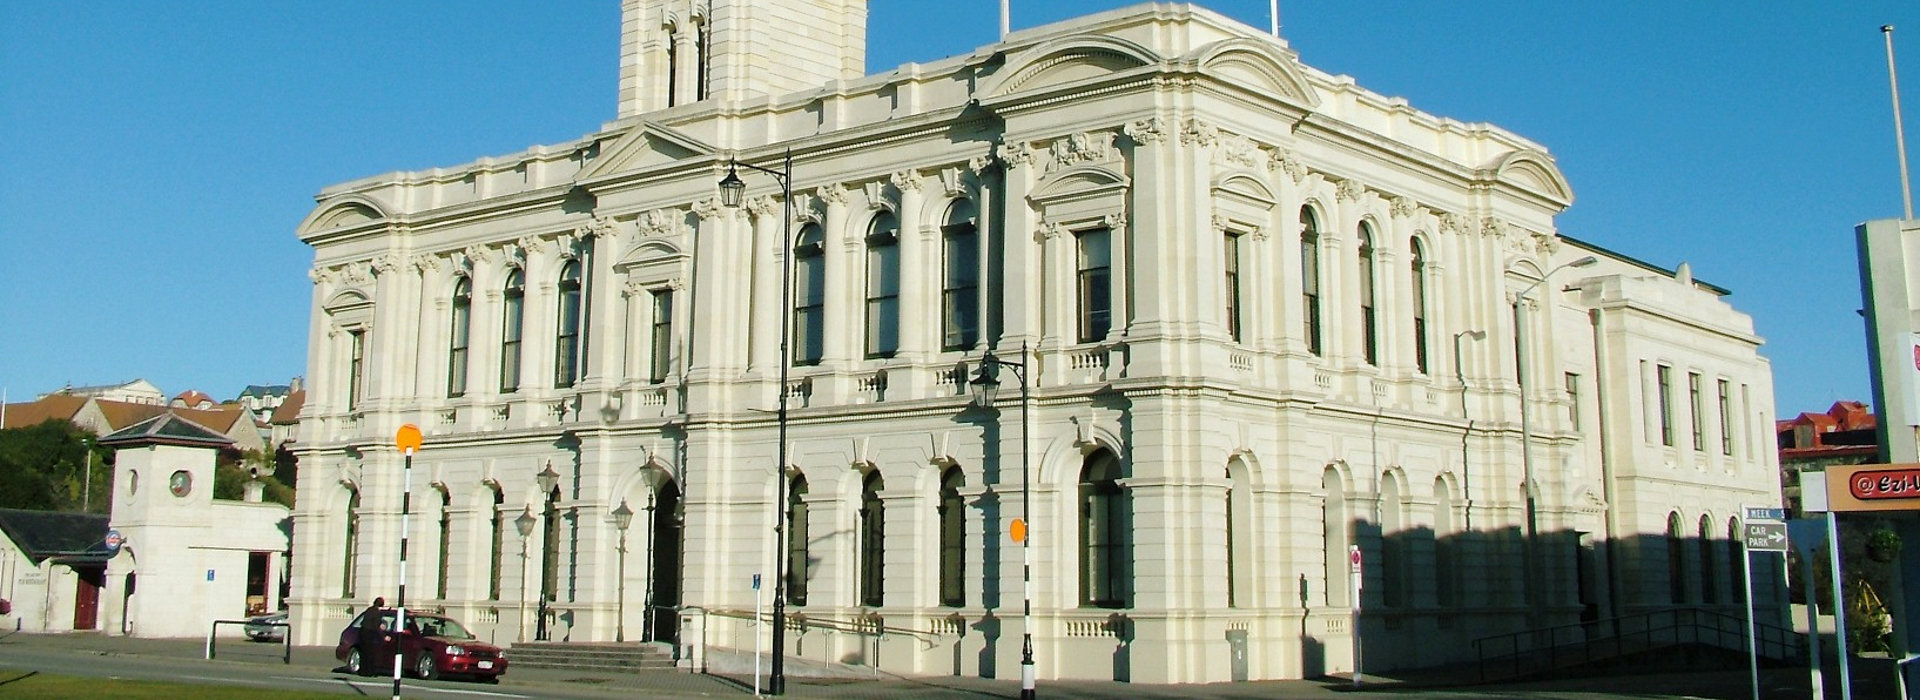 Exterior painting maintenance contract of council building in Otago